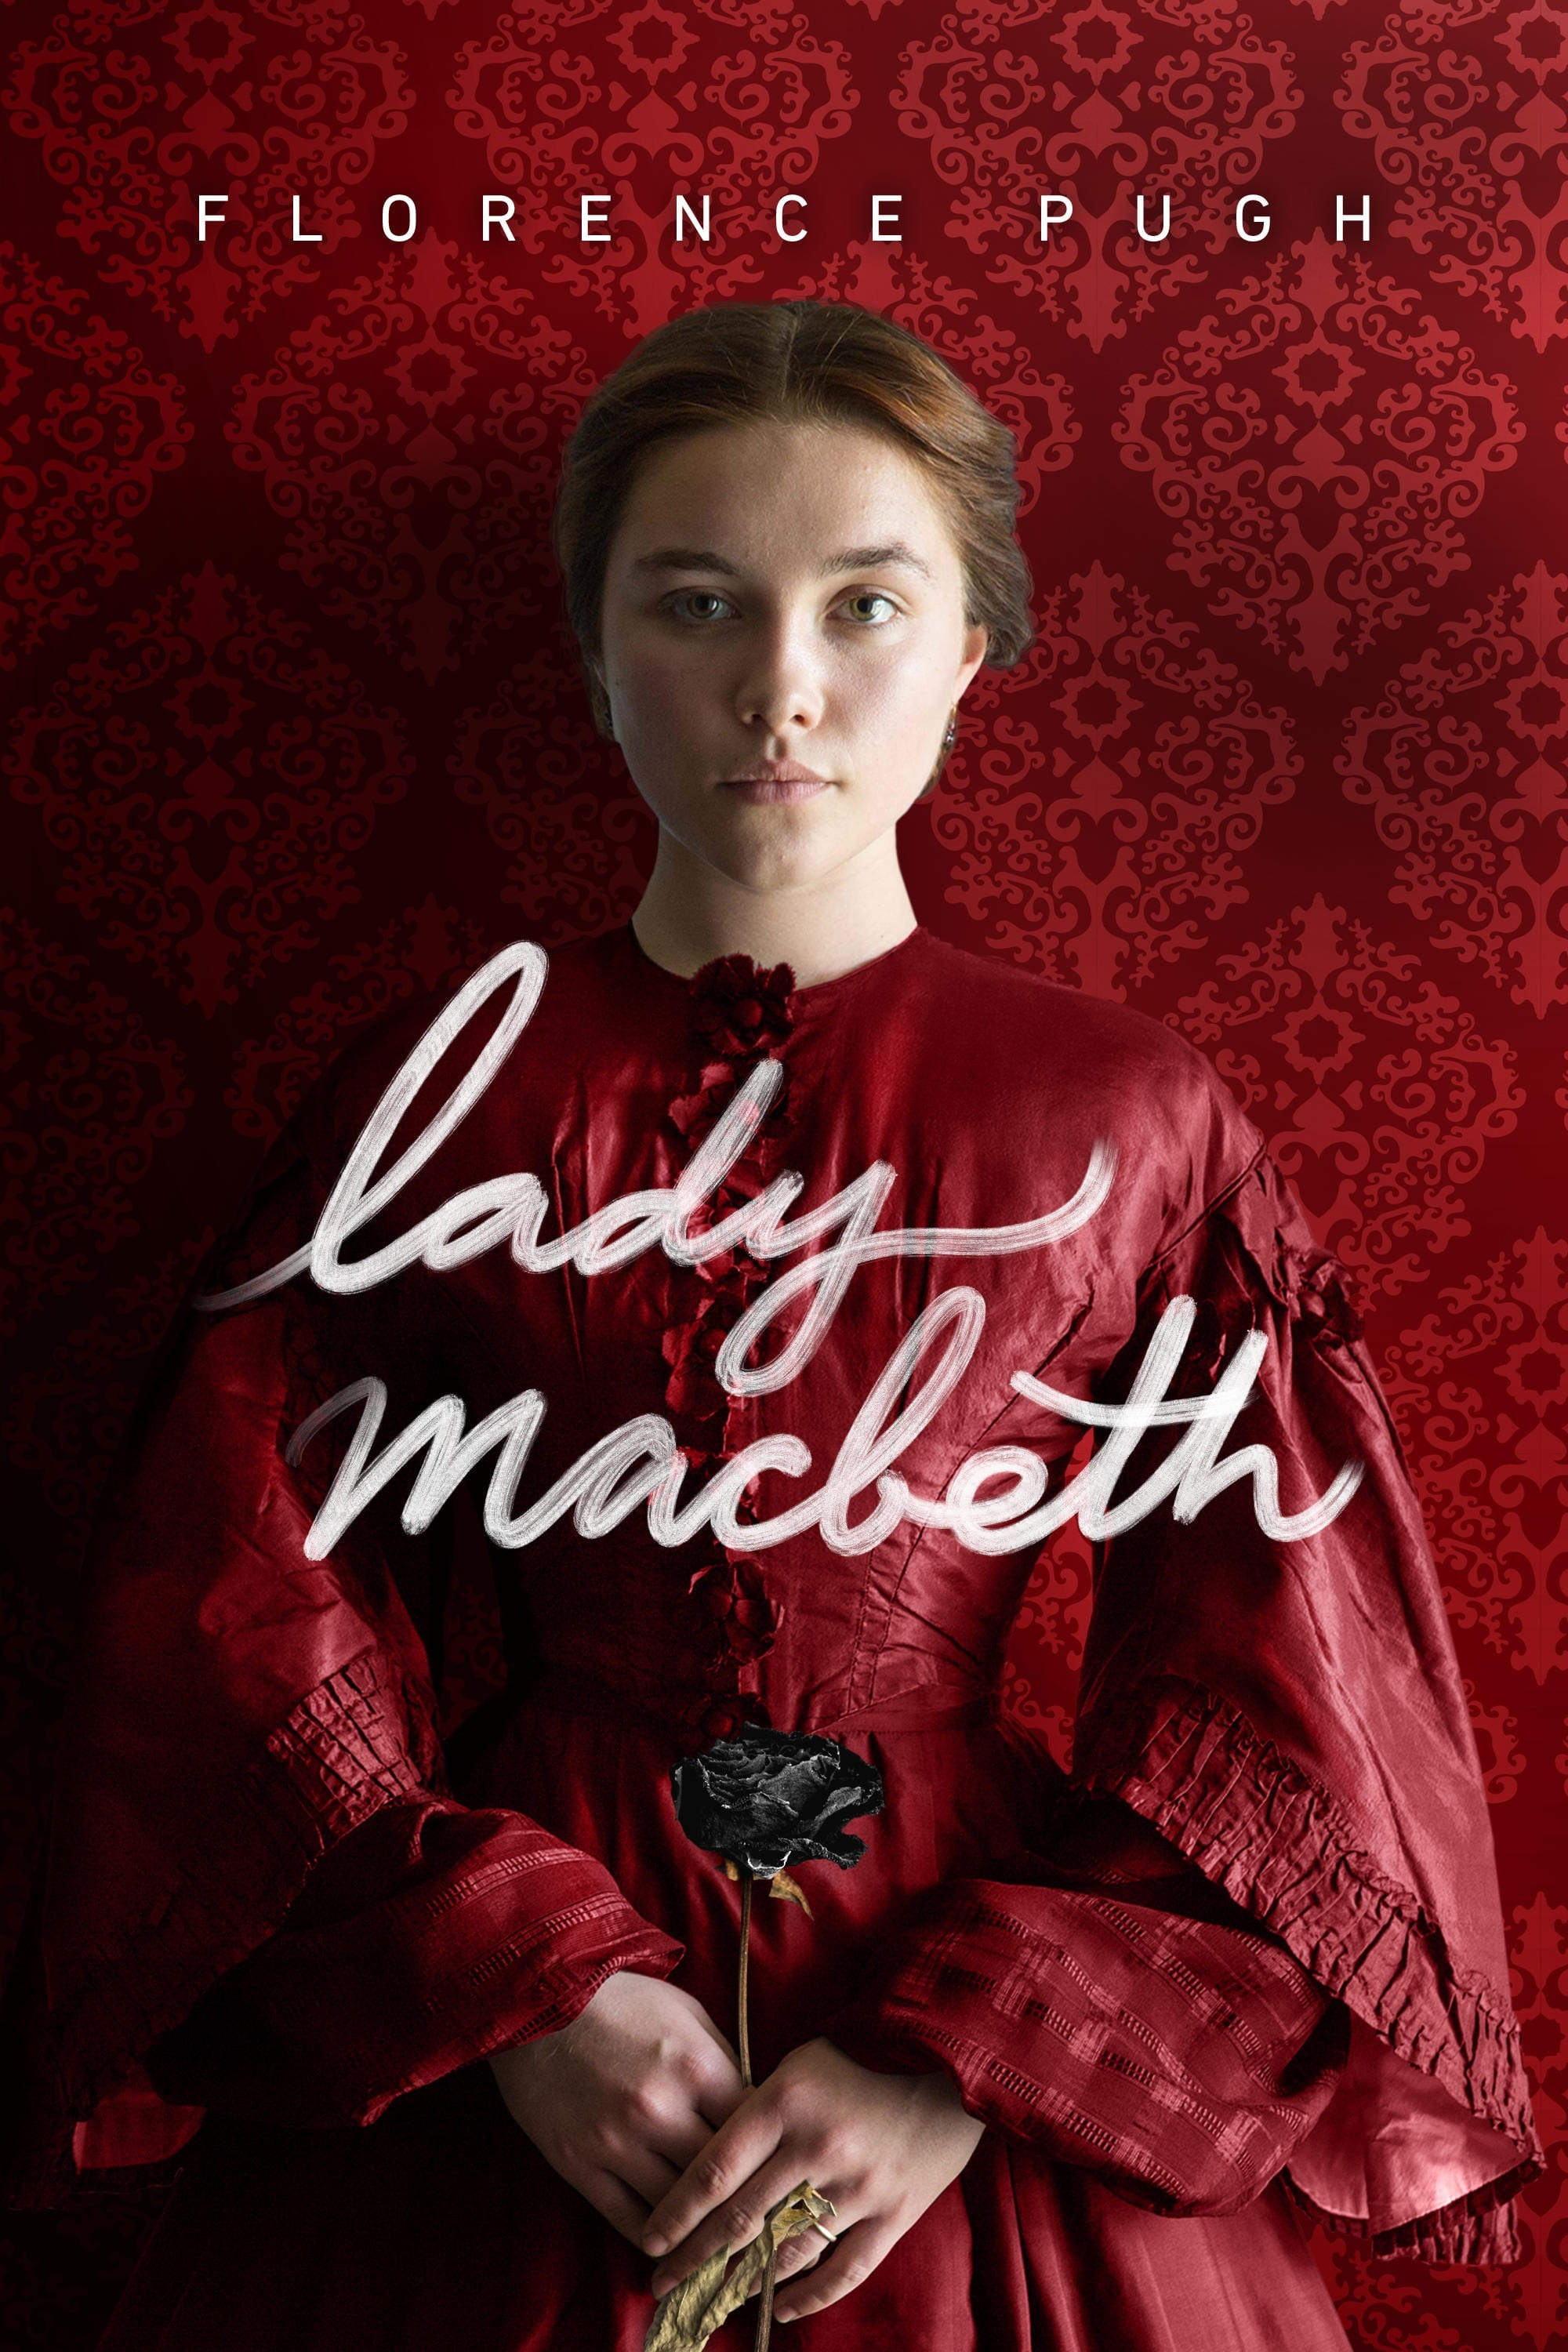 imagery used by lady macbeth